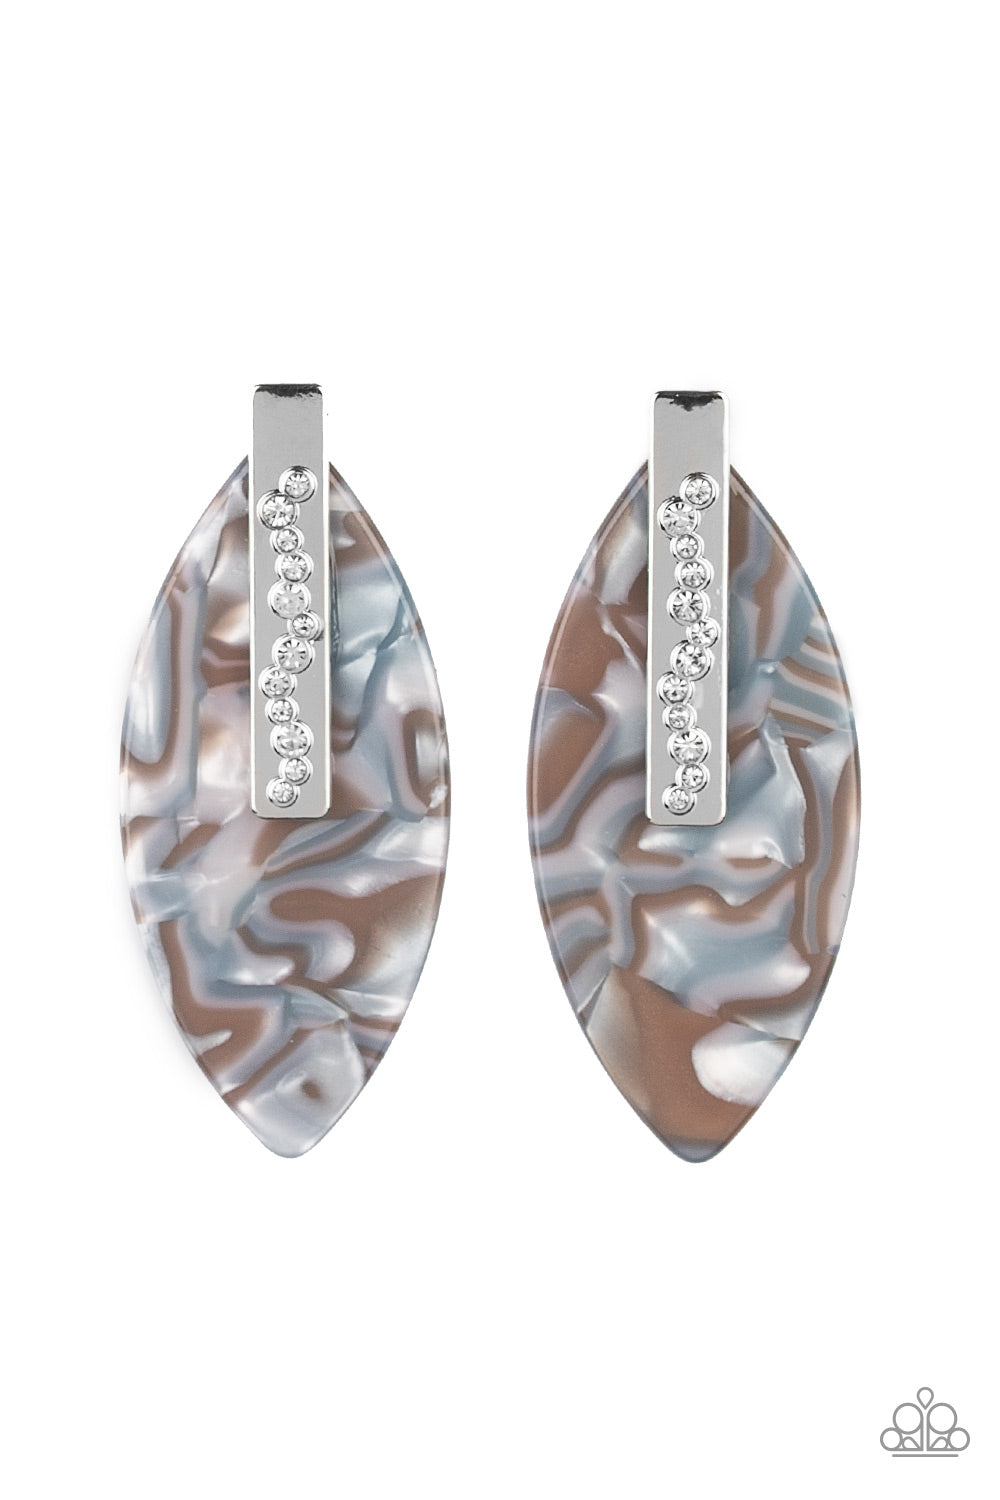 Paparazzi Maven Mantra Acrylic Post Earrings - Life of the Party Exclusive August 2020